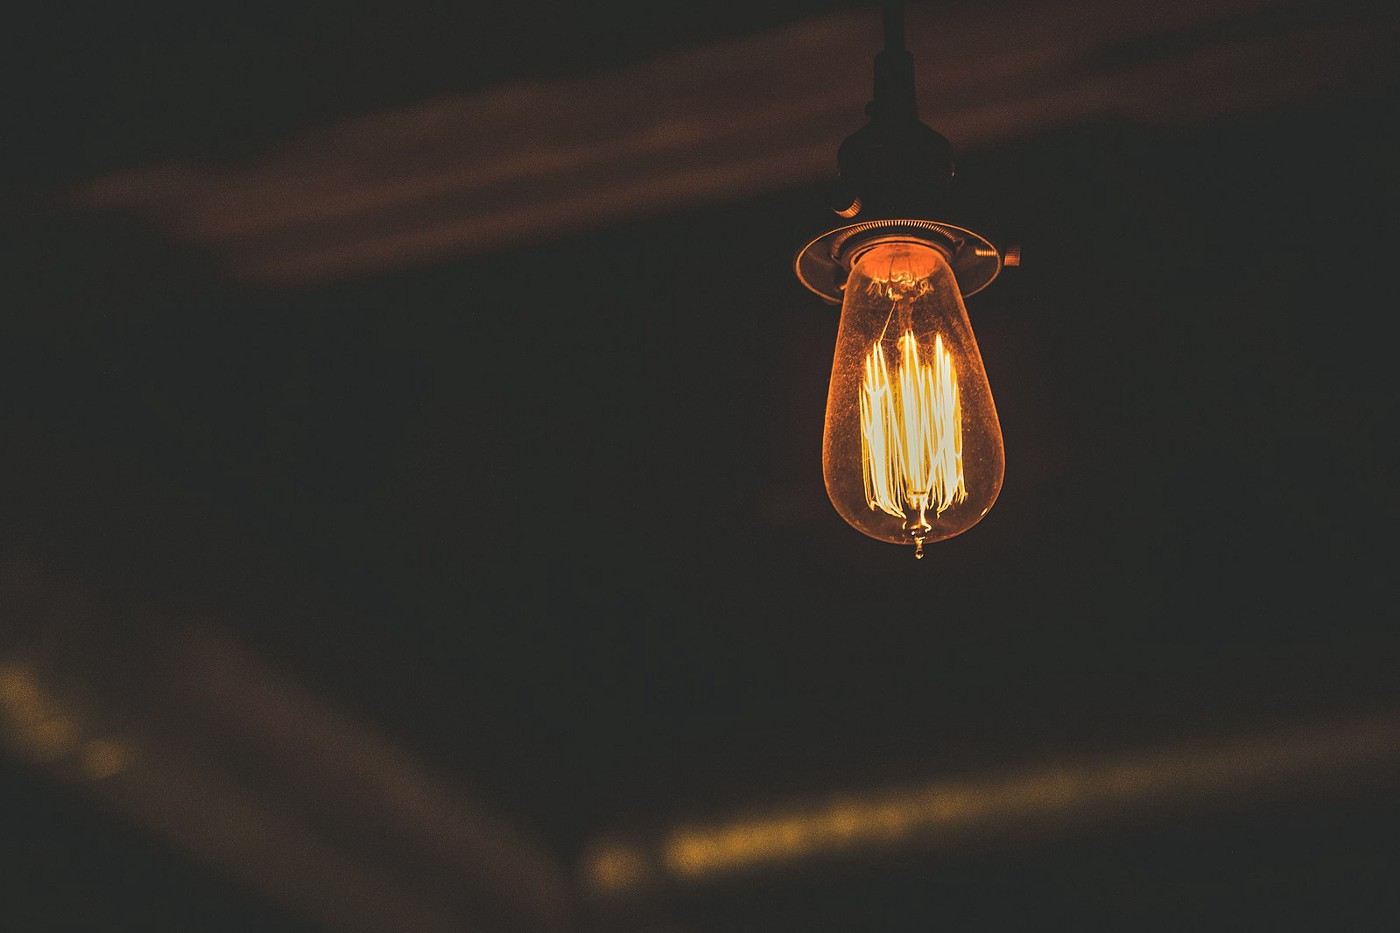 Photo of an old incandescent lightbulb